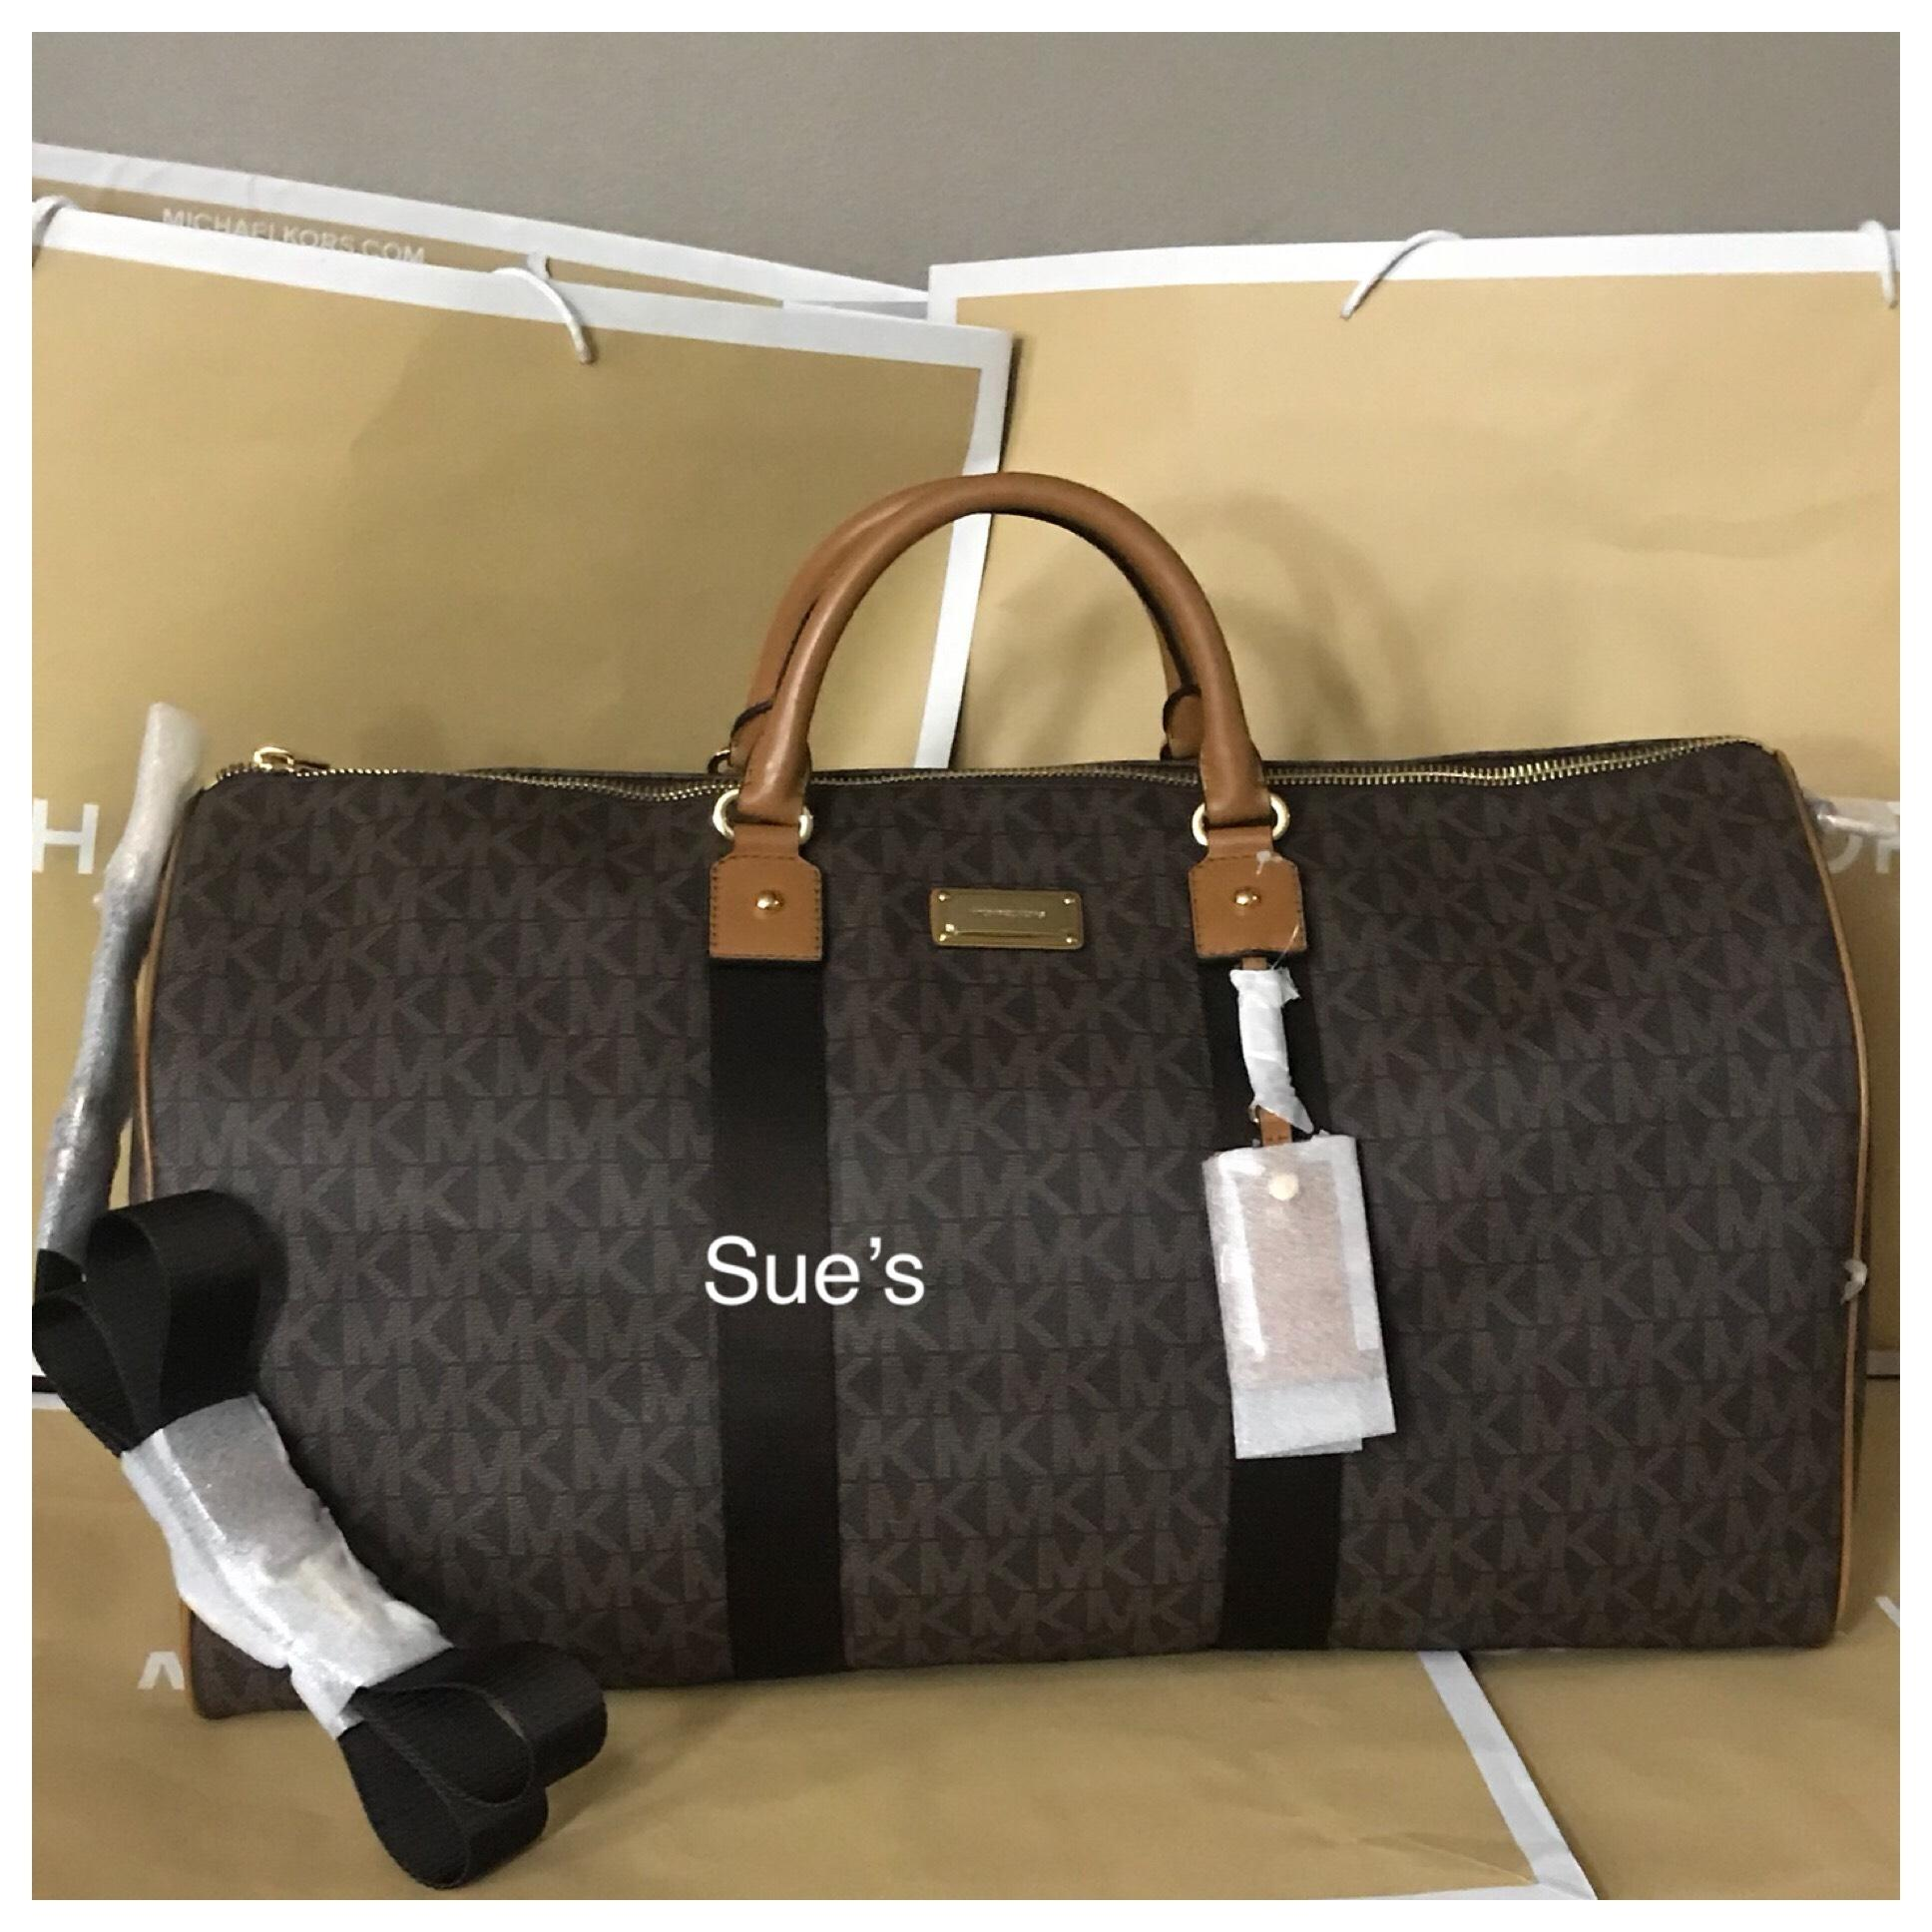 4a4b1deb748e ... spain michael kors brown travel bag 3d837 6d933 ...